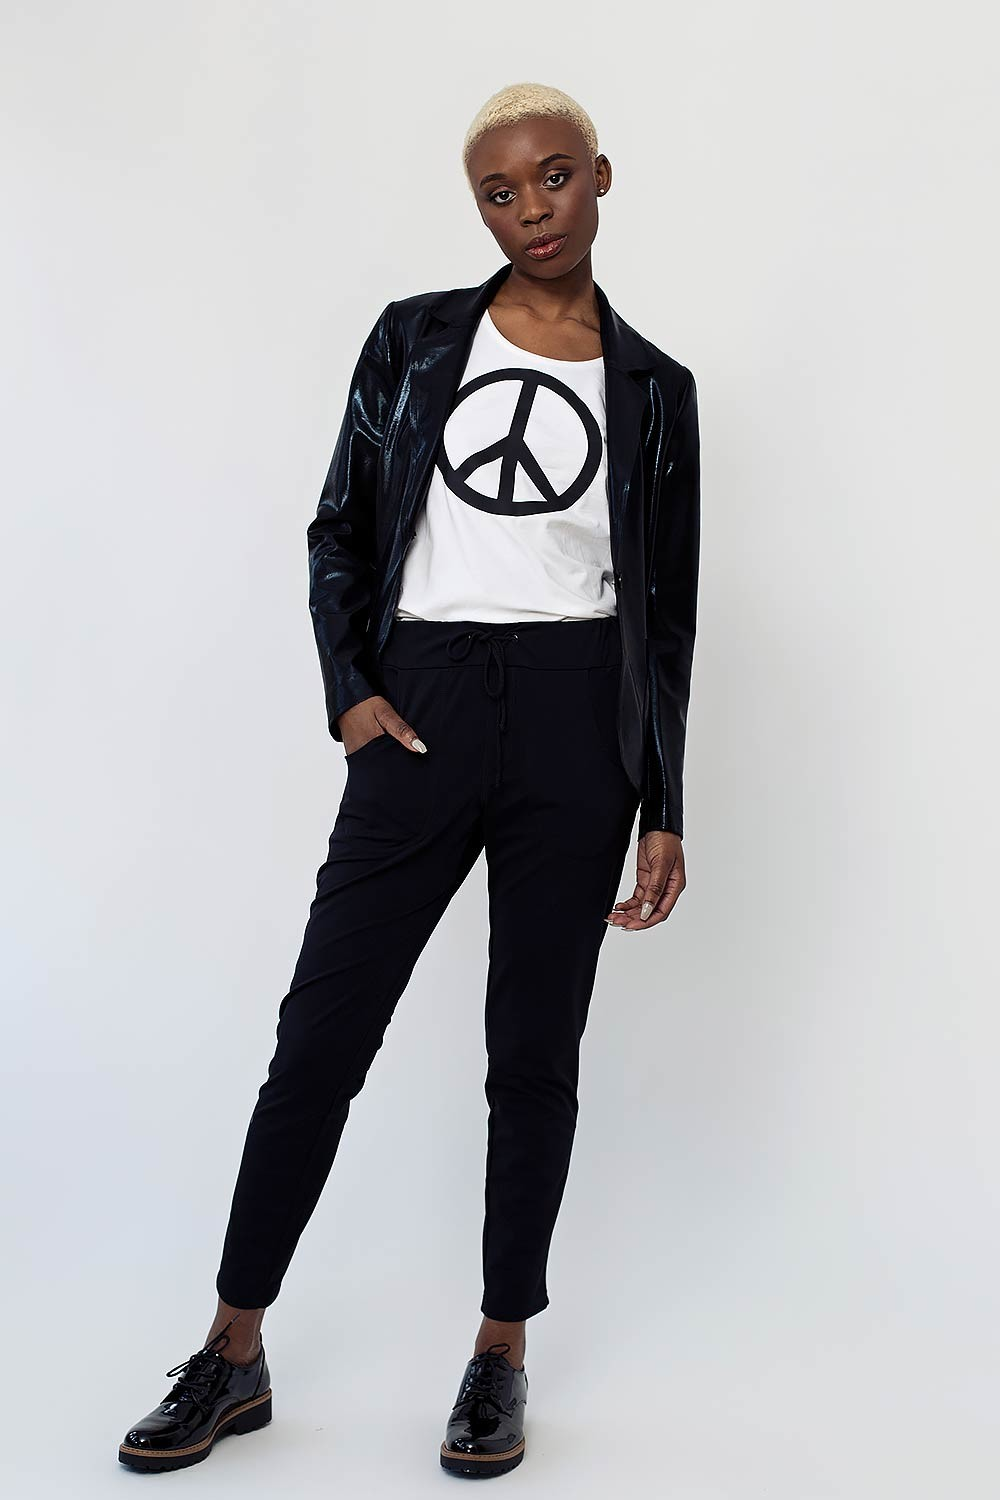 white t-shirt with peace sign, black sweatpants and stretch shiny jacket